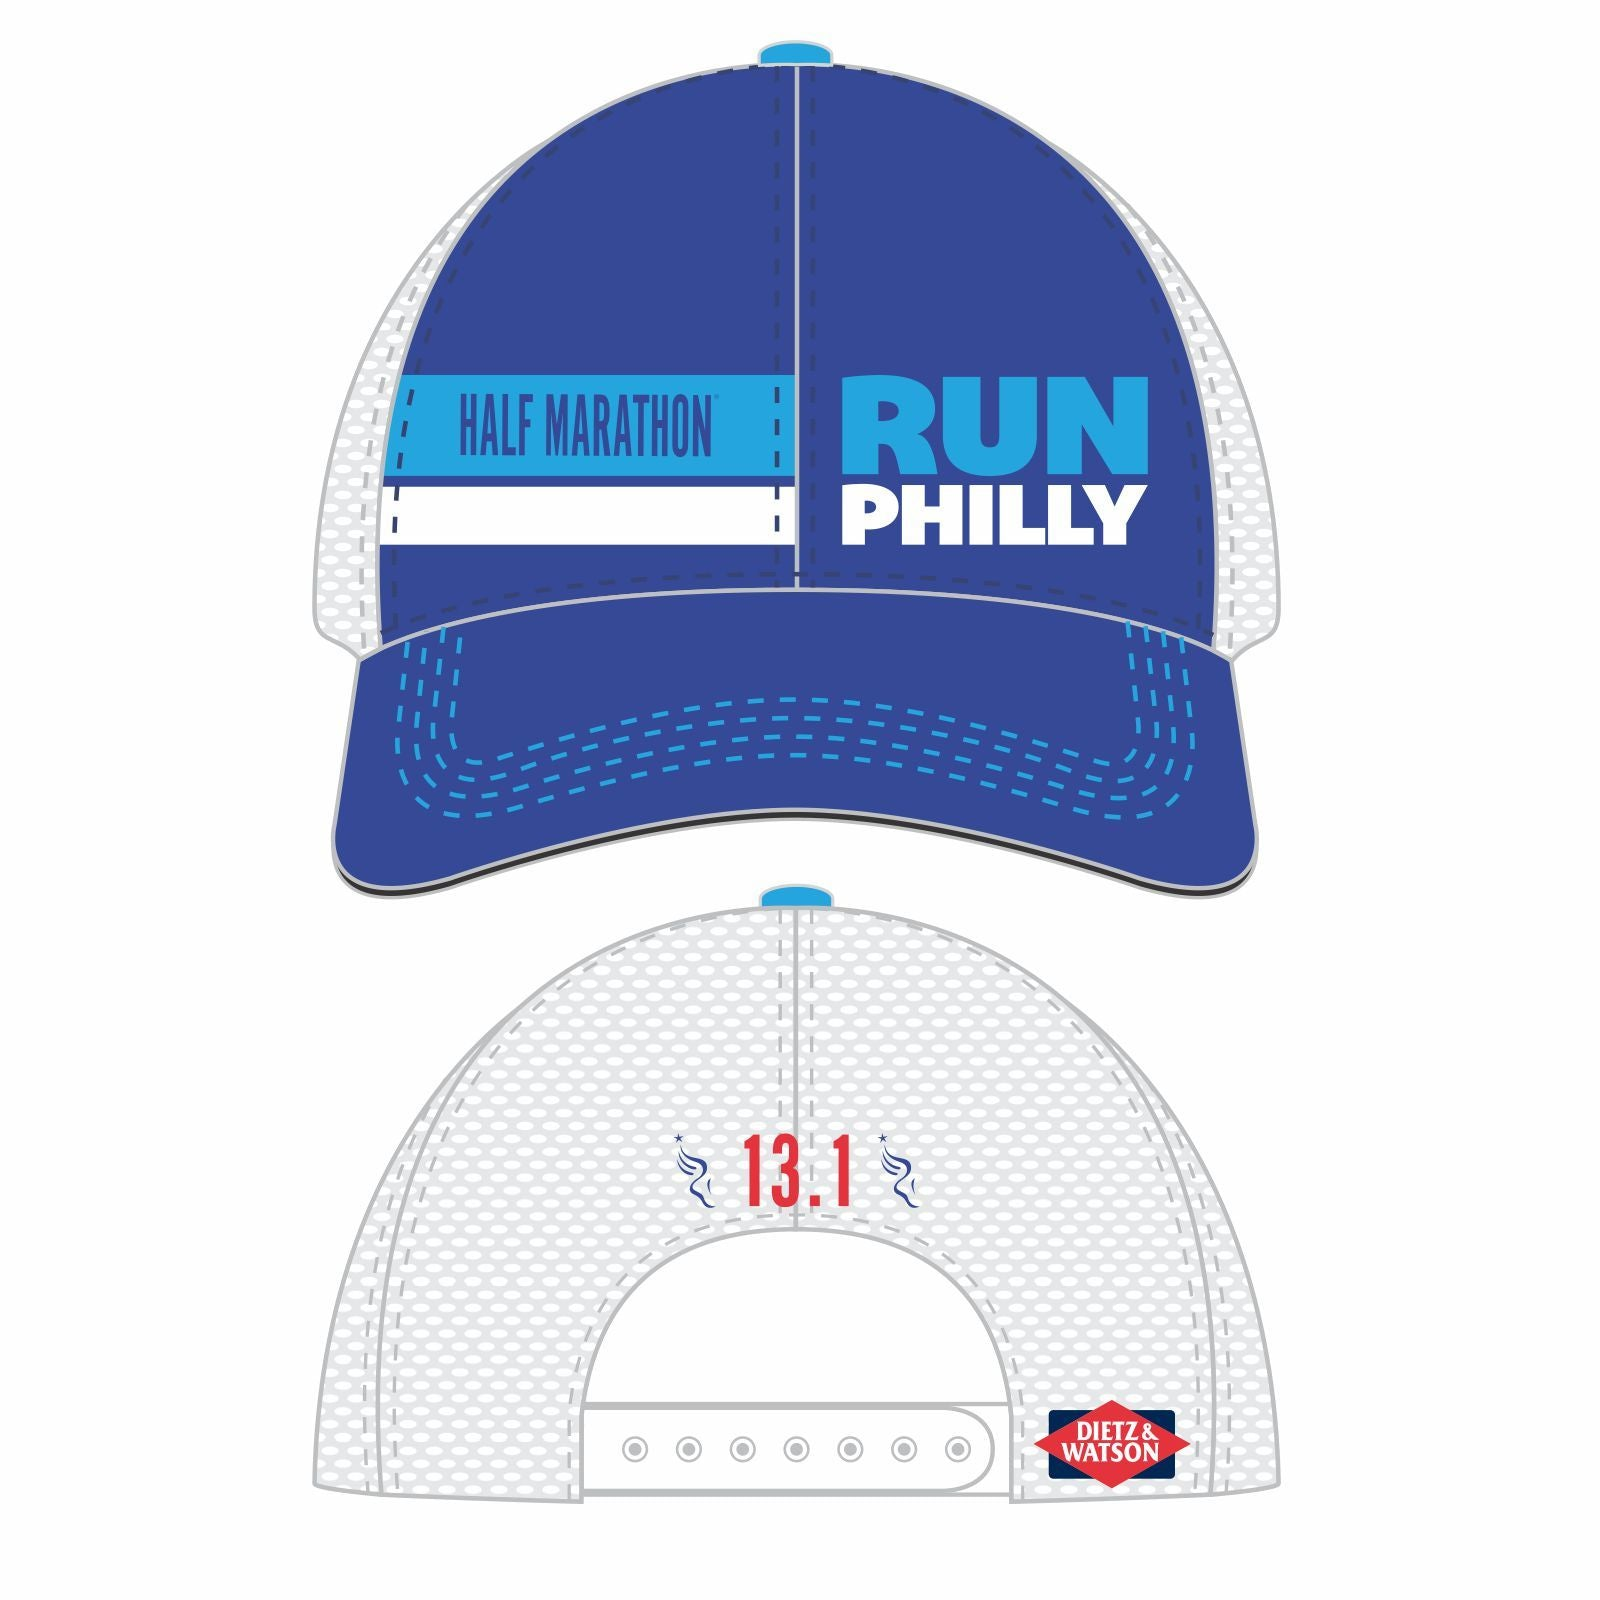 Philadelphia Marathon: 'Half Marathon' Relaxed Fit Tech Trucker - Royal / White